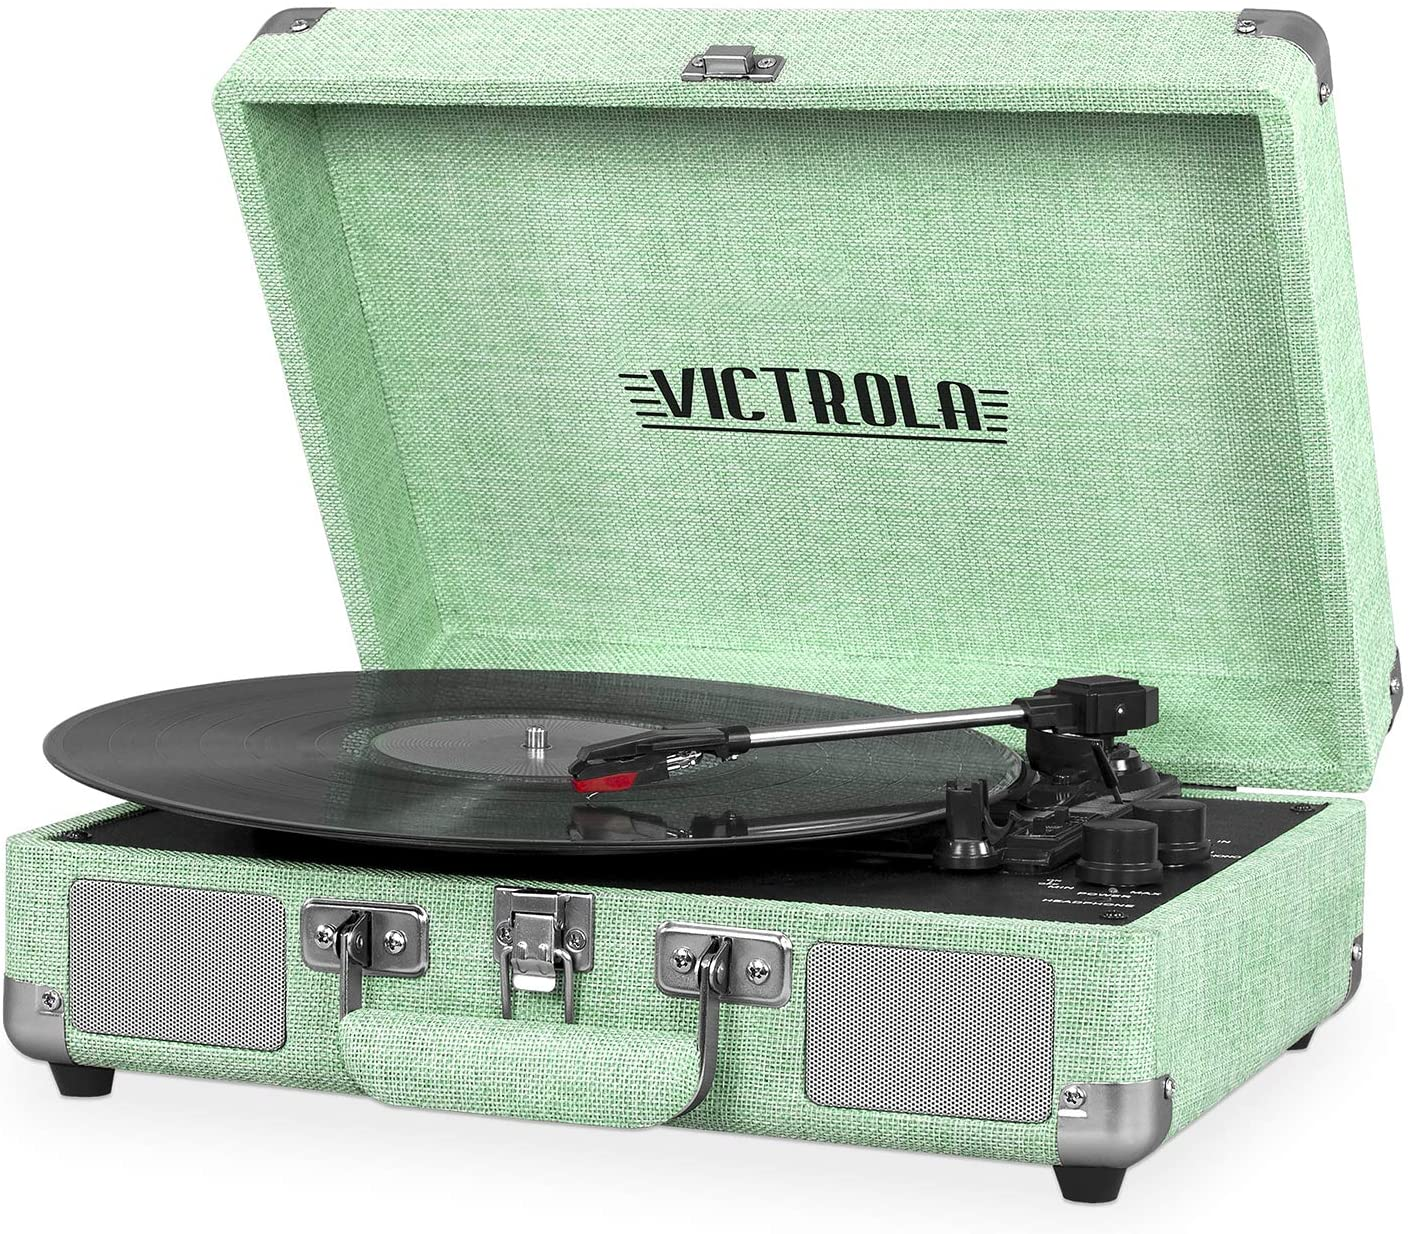 Victrola Vintage 3-Speed Bluetooth Portable Suitcase Record Player with Built-in Speakers | Upgraded Turntable Audio Sound| Includes Extra Stylus | Light Mint Green Linen